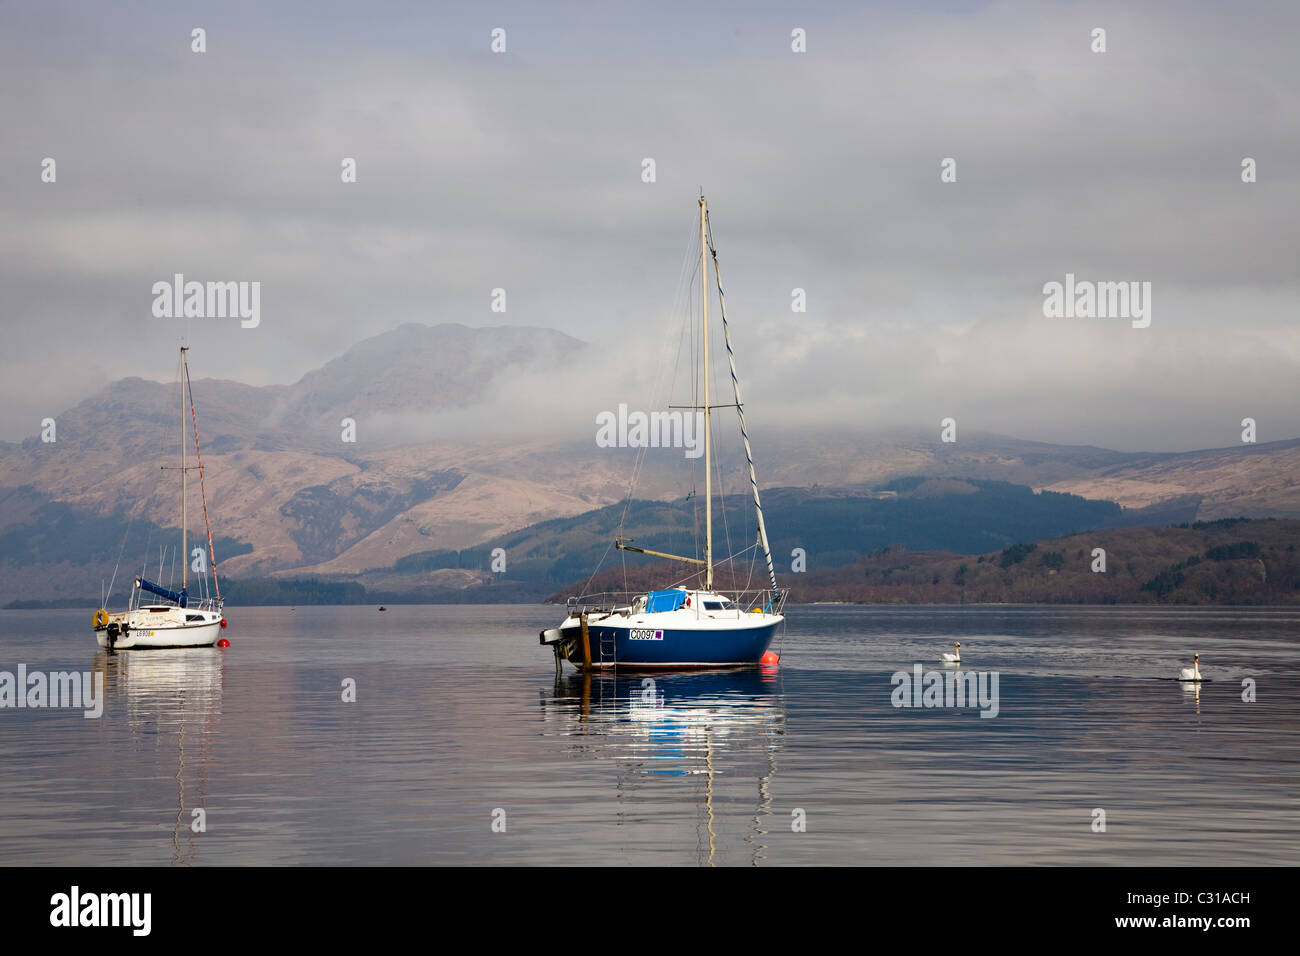 Yachts at anchor near Luss, Loch Lomond, Argyll, Scotland. Ben Lomond in the distance surrounded by clouds. - Stock Image